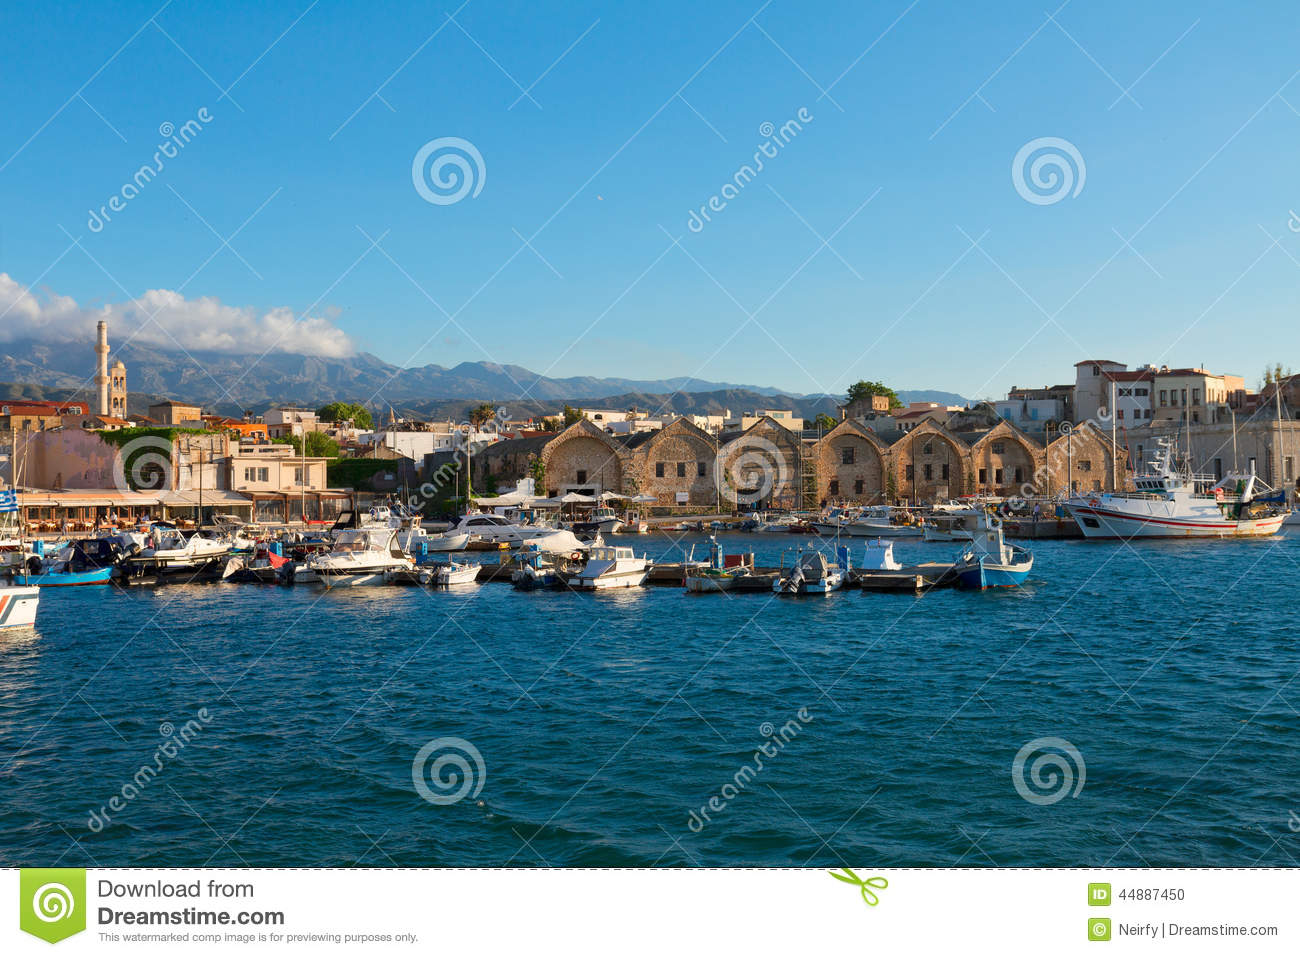 ... with historical houses and boats at sunny summer day, Crete, Greece